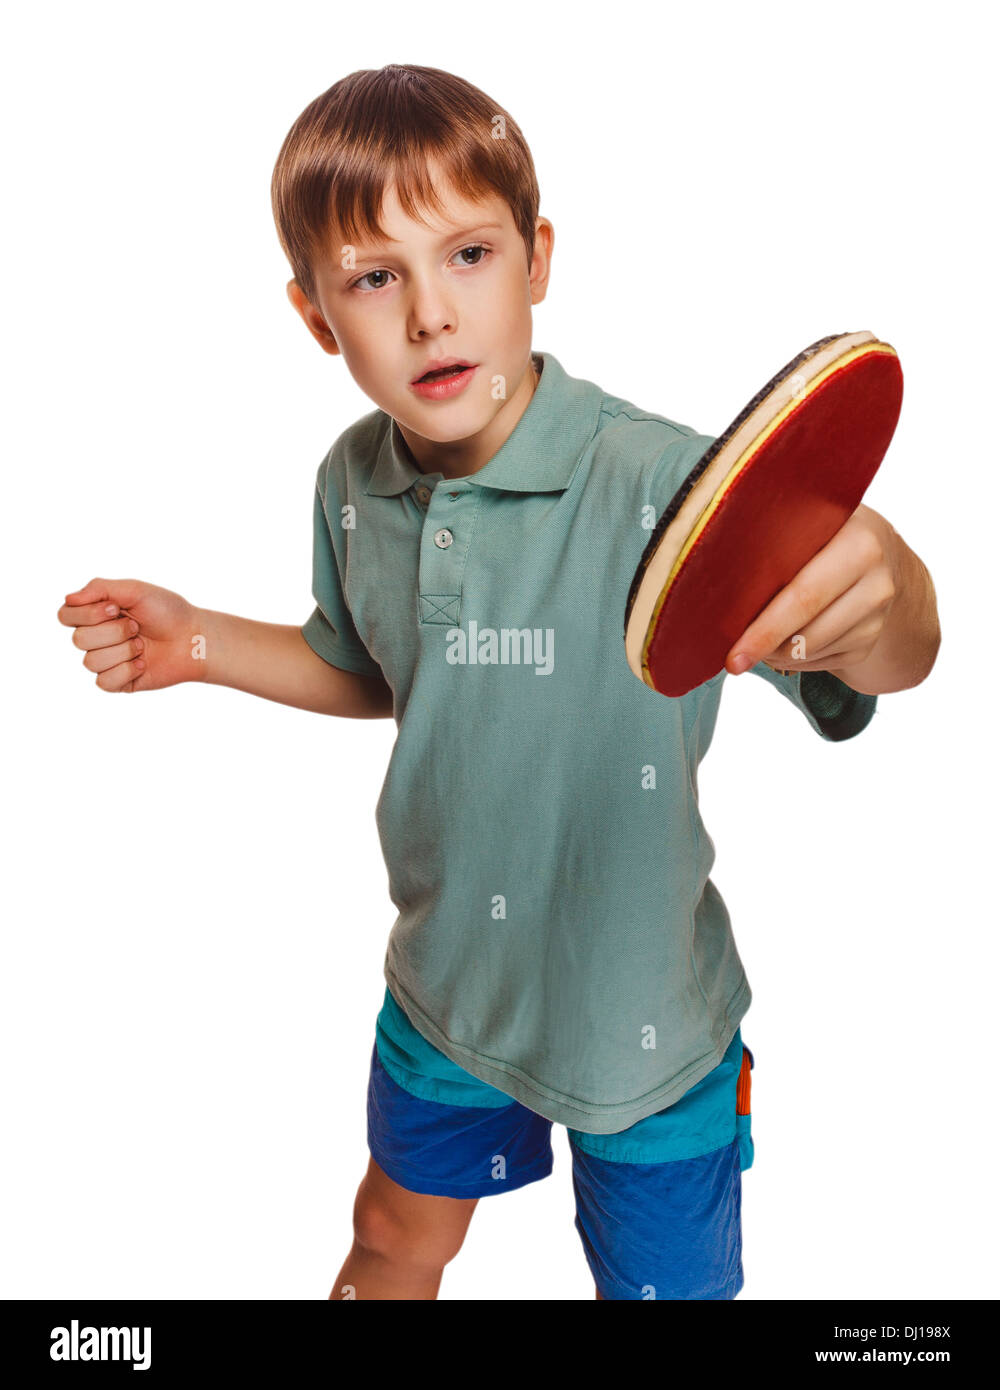 blond ping pong man boy playing table tennis backhand takes topspin isolated on white background - Stock Image